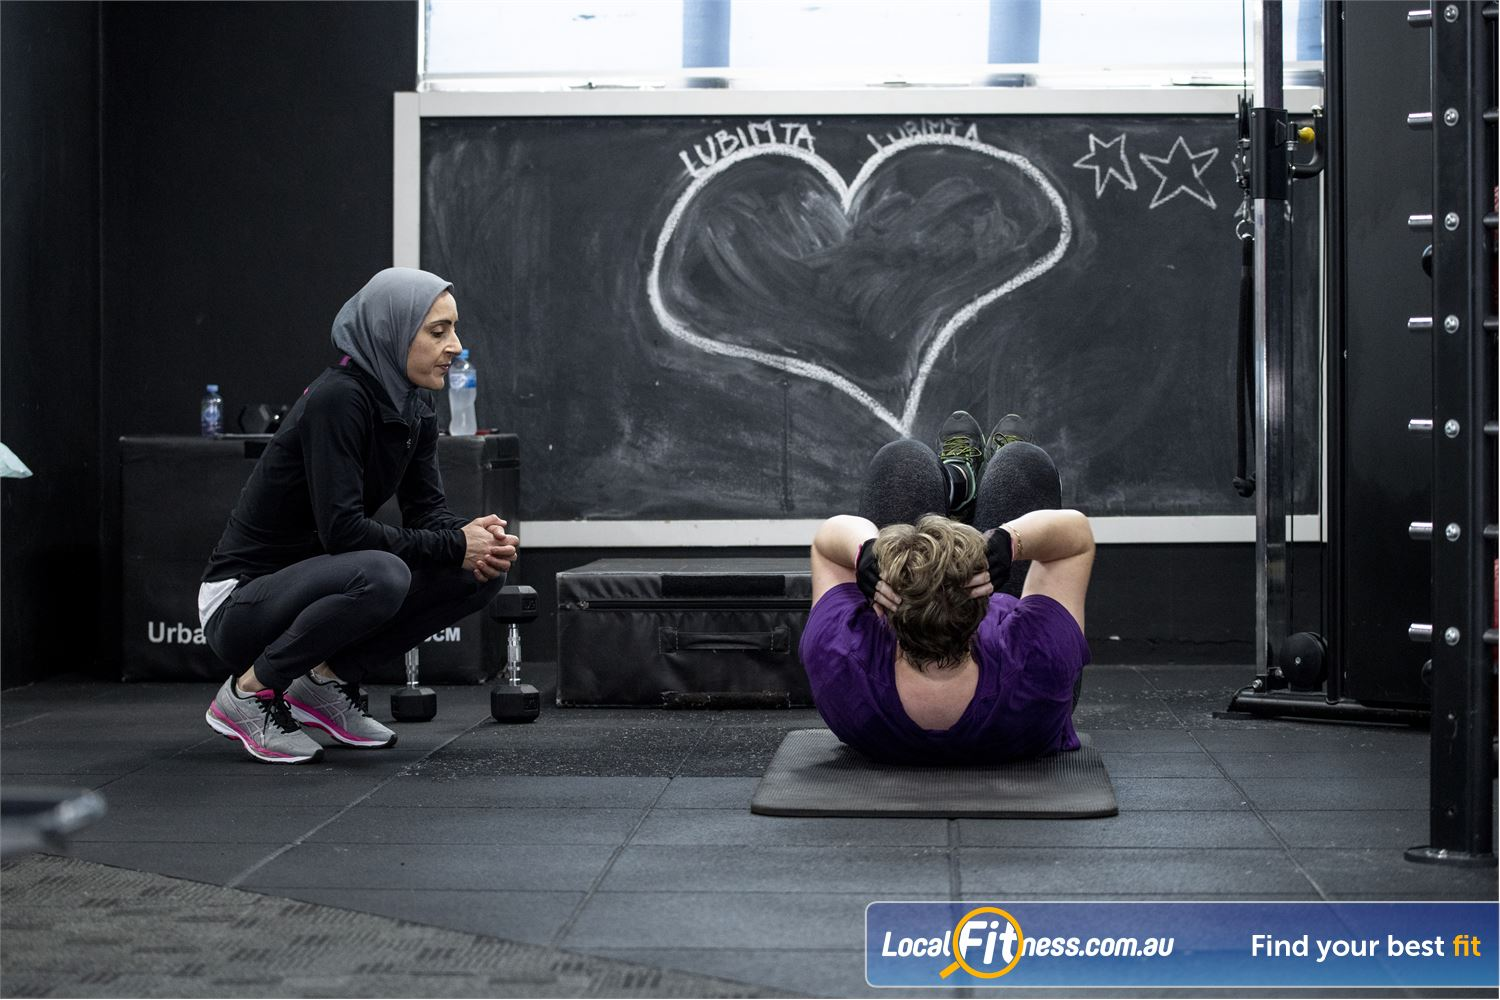 Fernwood Fitness Beverly Hills Fernwood Beverly Hills personal training is designed to give women the best results.